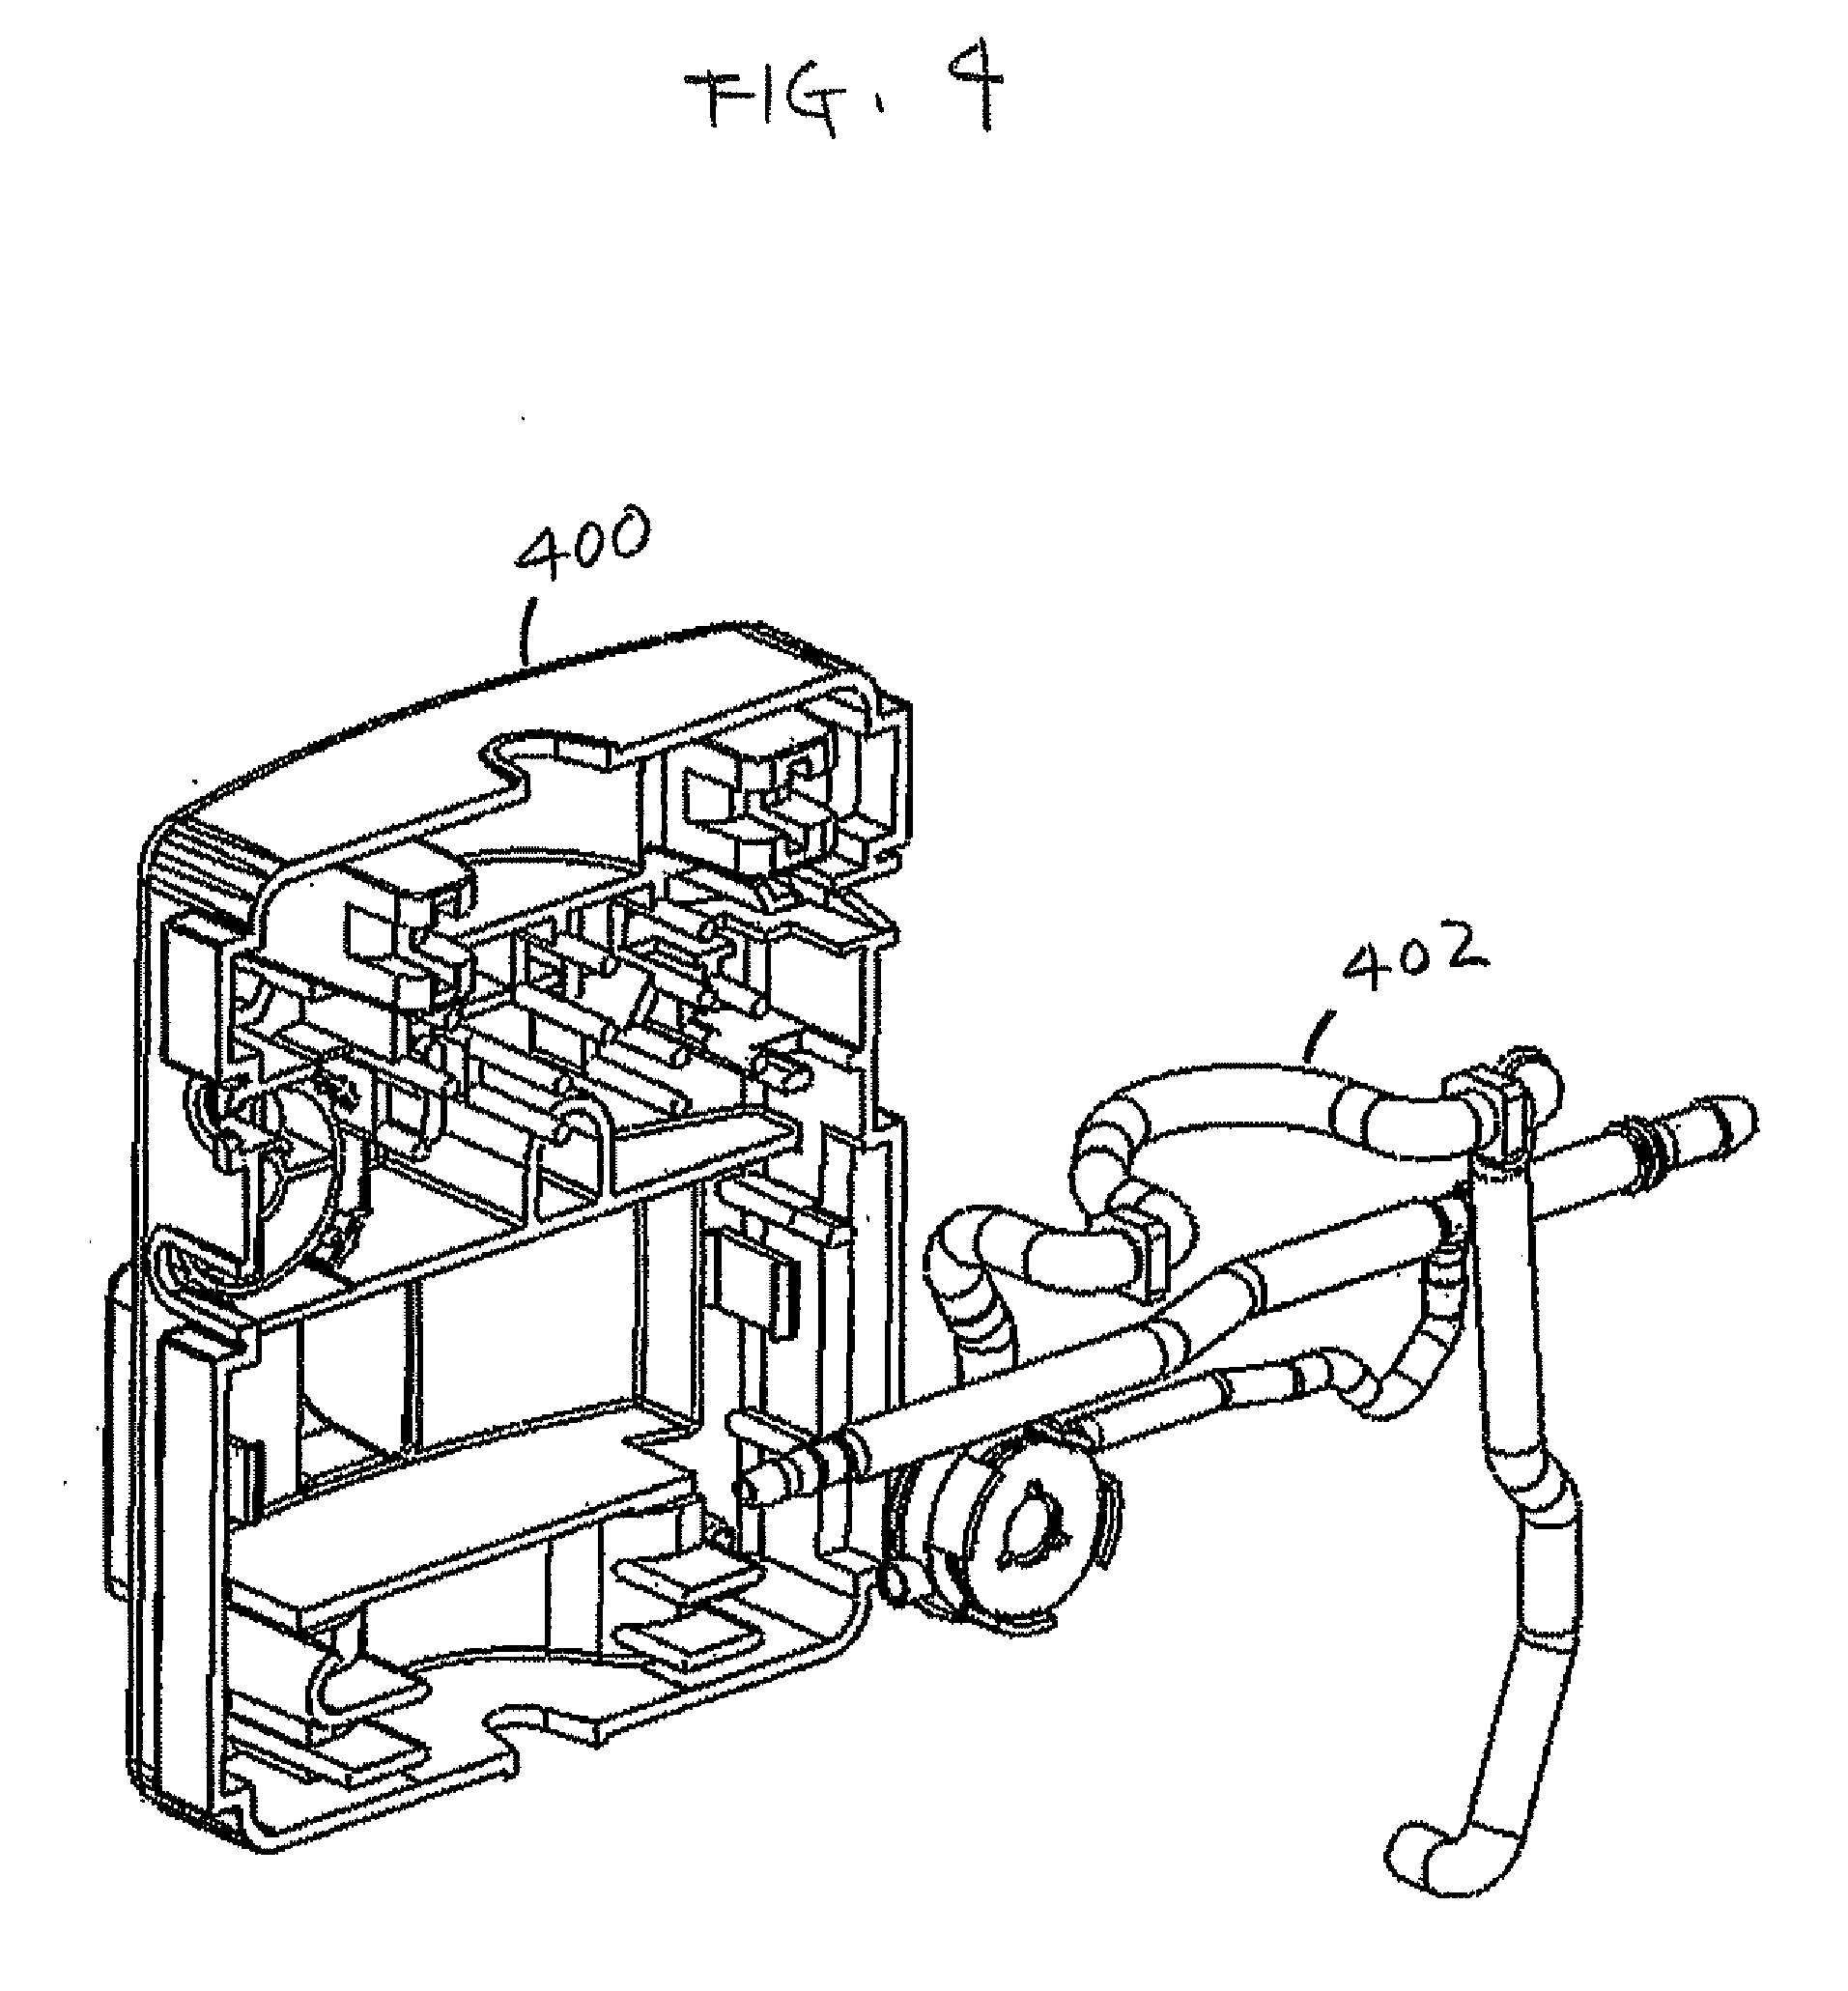 patent us20080114300 fluidics cassette for ocular surgical 2006 Usch Mustang Fuse Box Diagram 2006 Usch Mustang Fuse Box Diagram #61